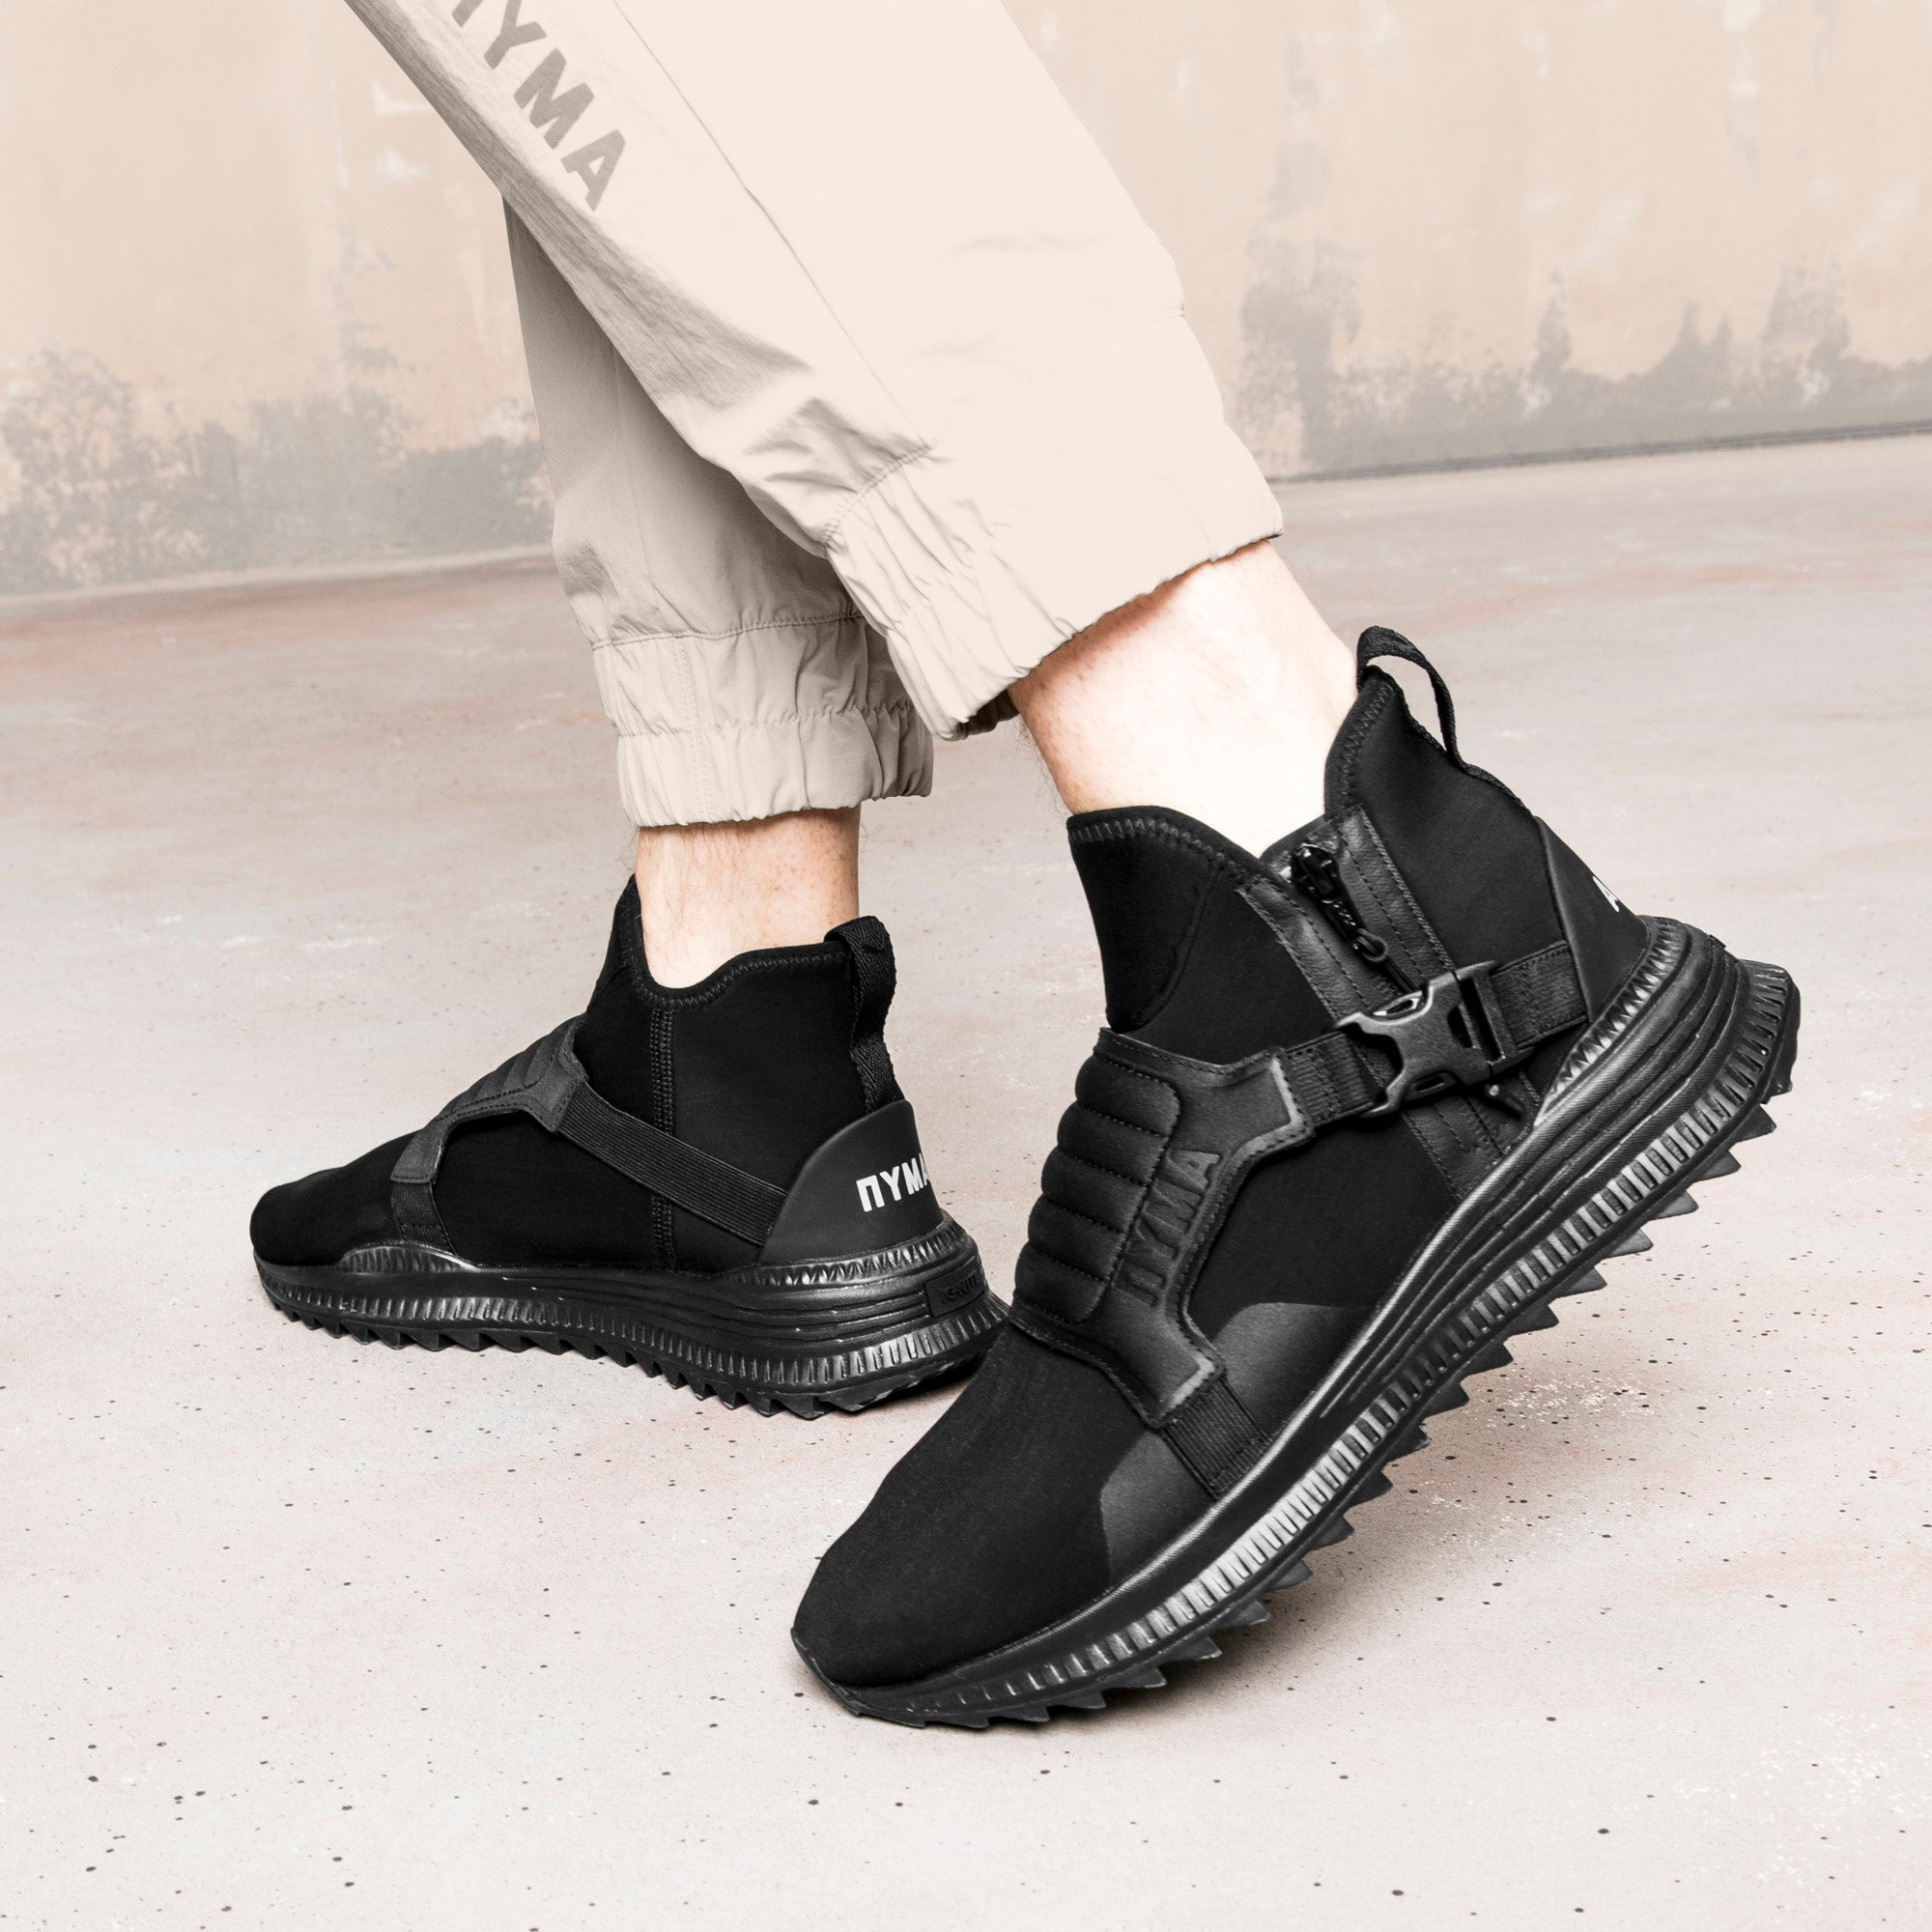 PUMA | Outlaw Moscow Avid Shield Black